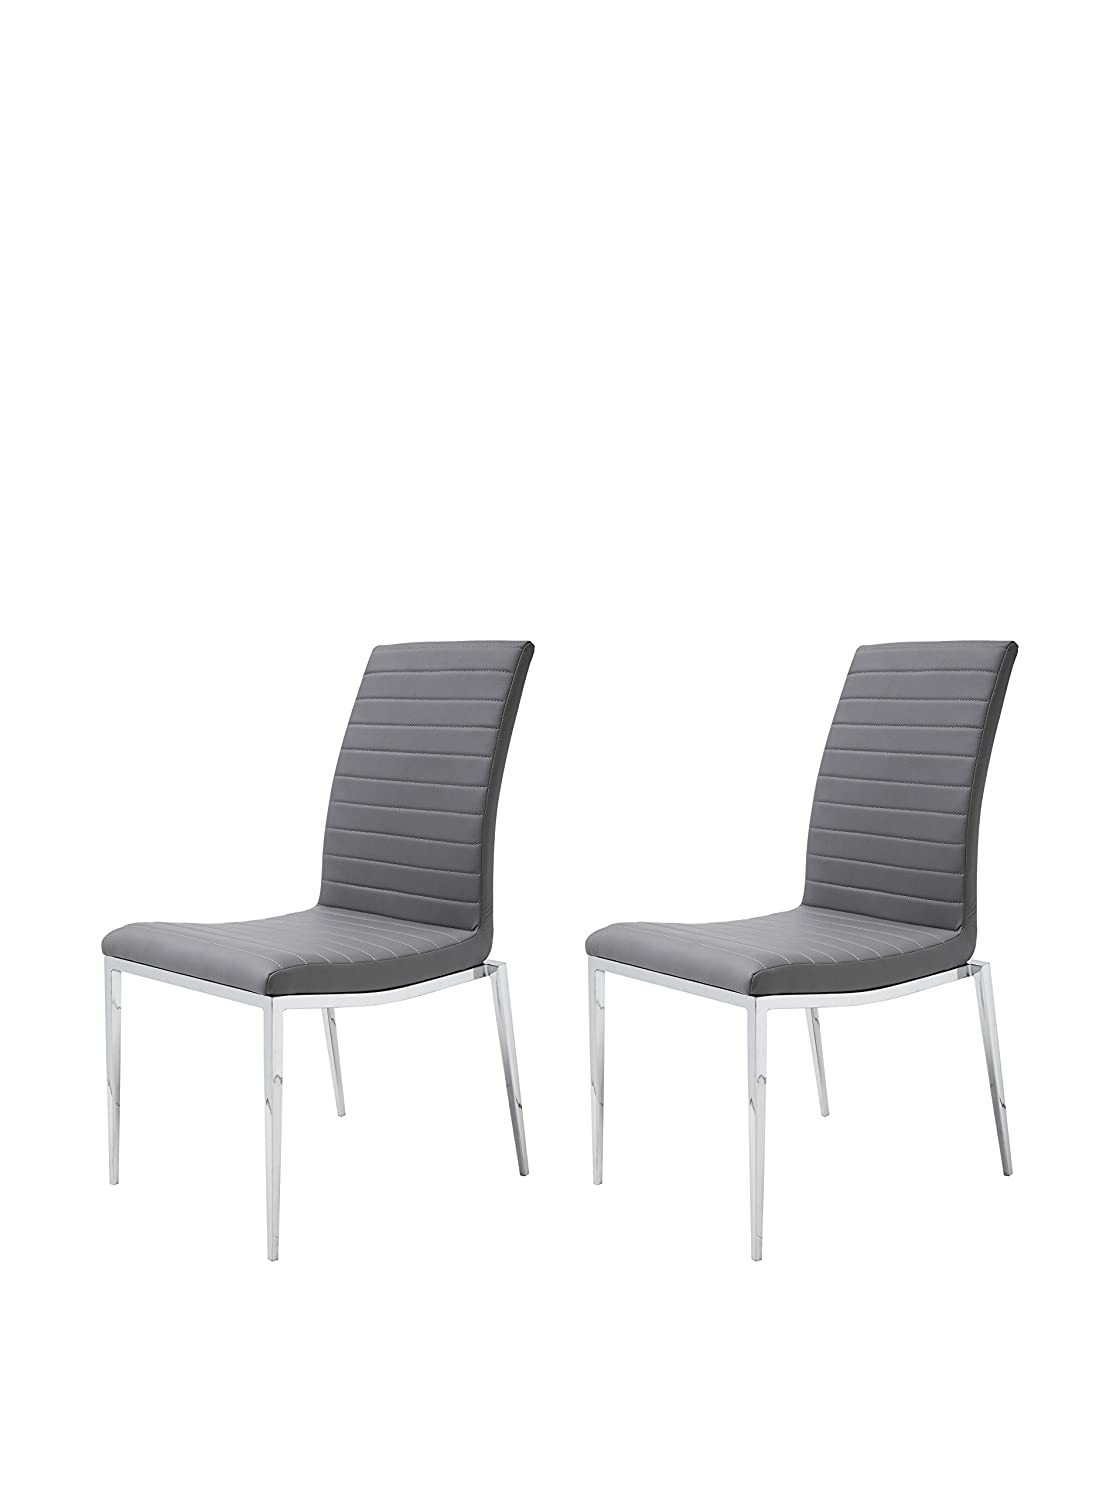 Amazon com zoe dining chair gray set of 2 chairs